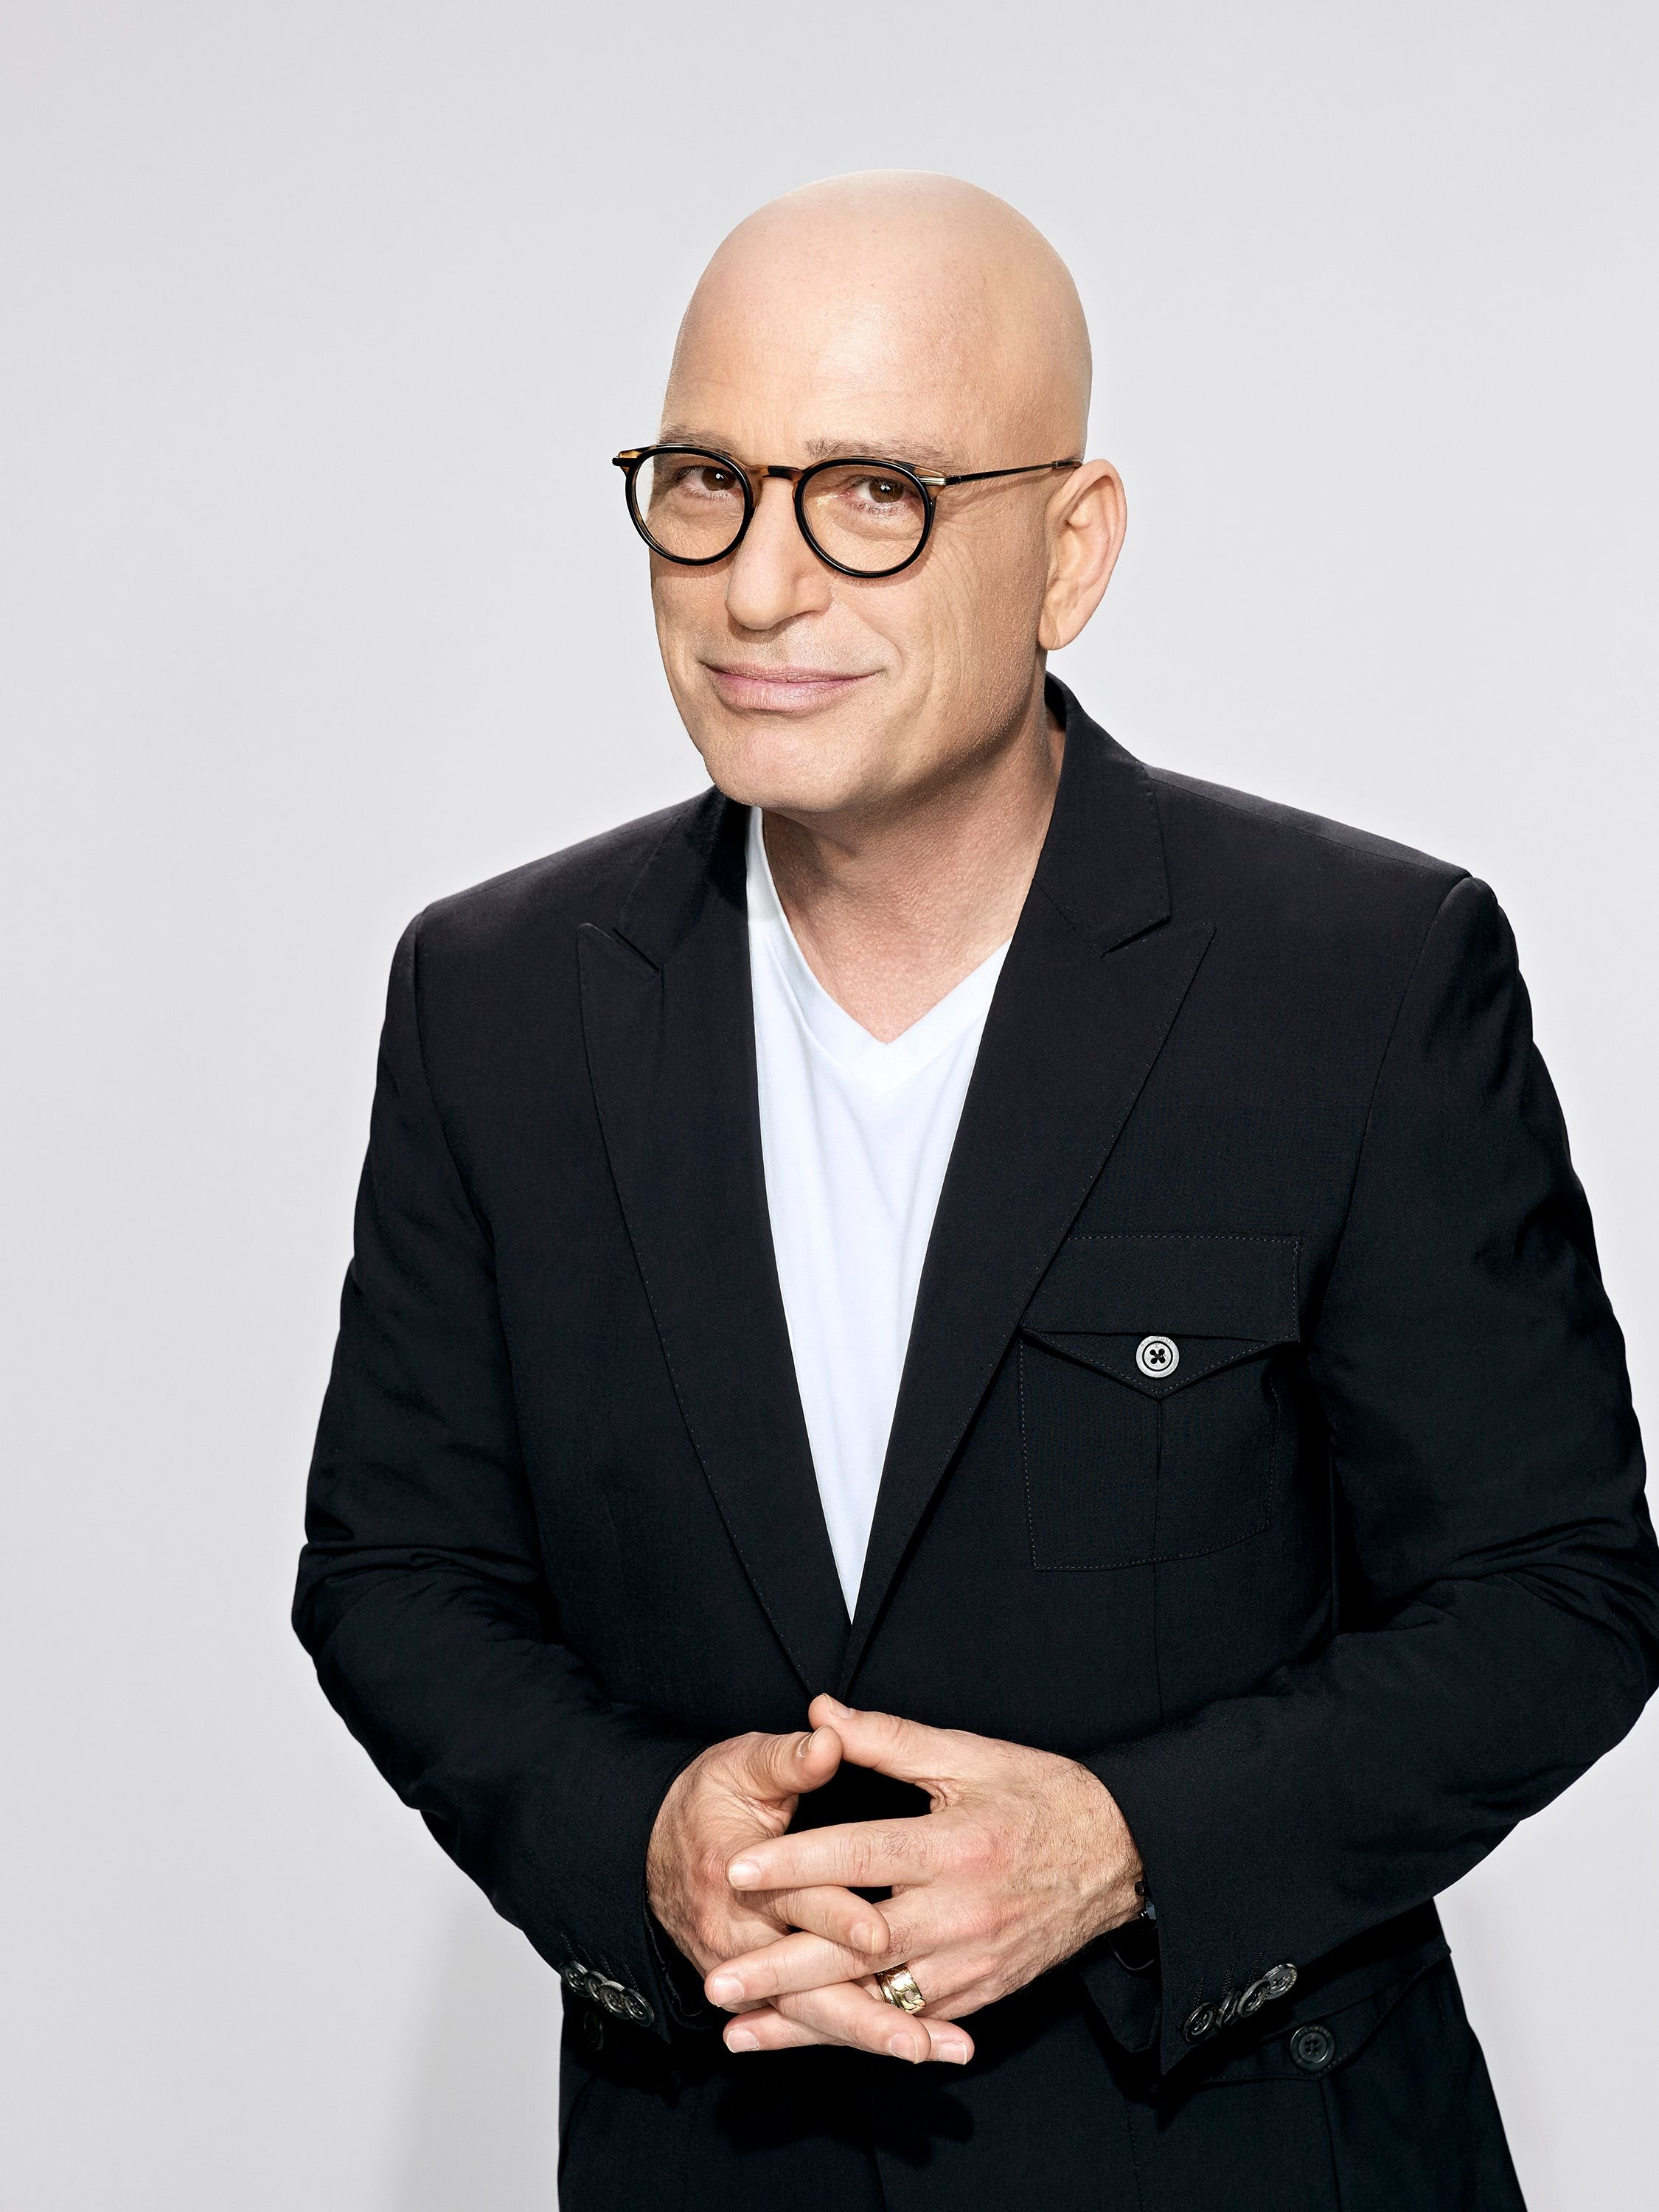 """Official portrait of Howie Mandel for """"America's Got Talent""""   Source: Getty Image"""